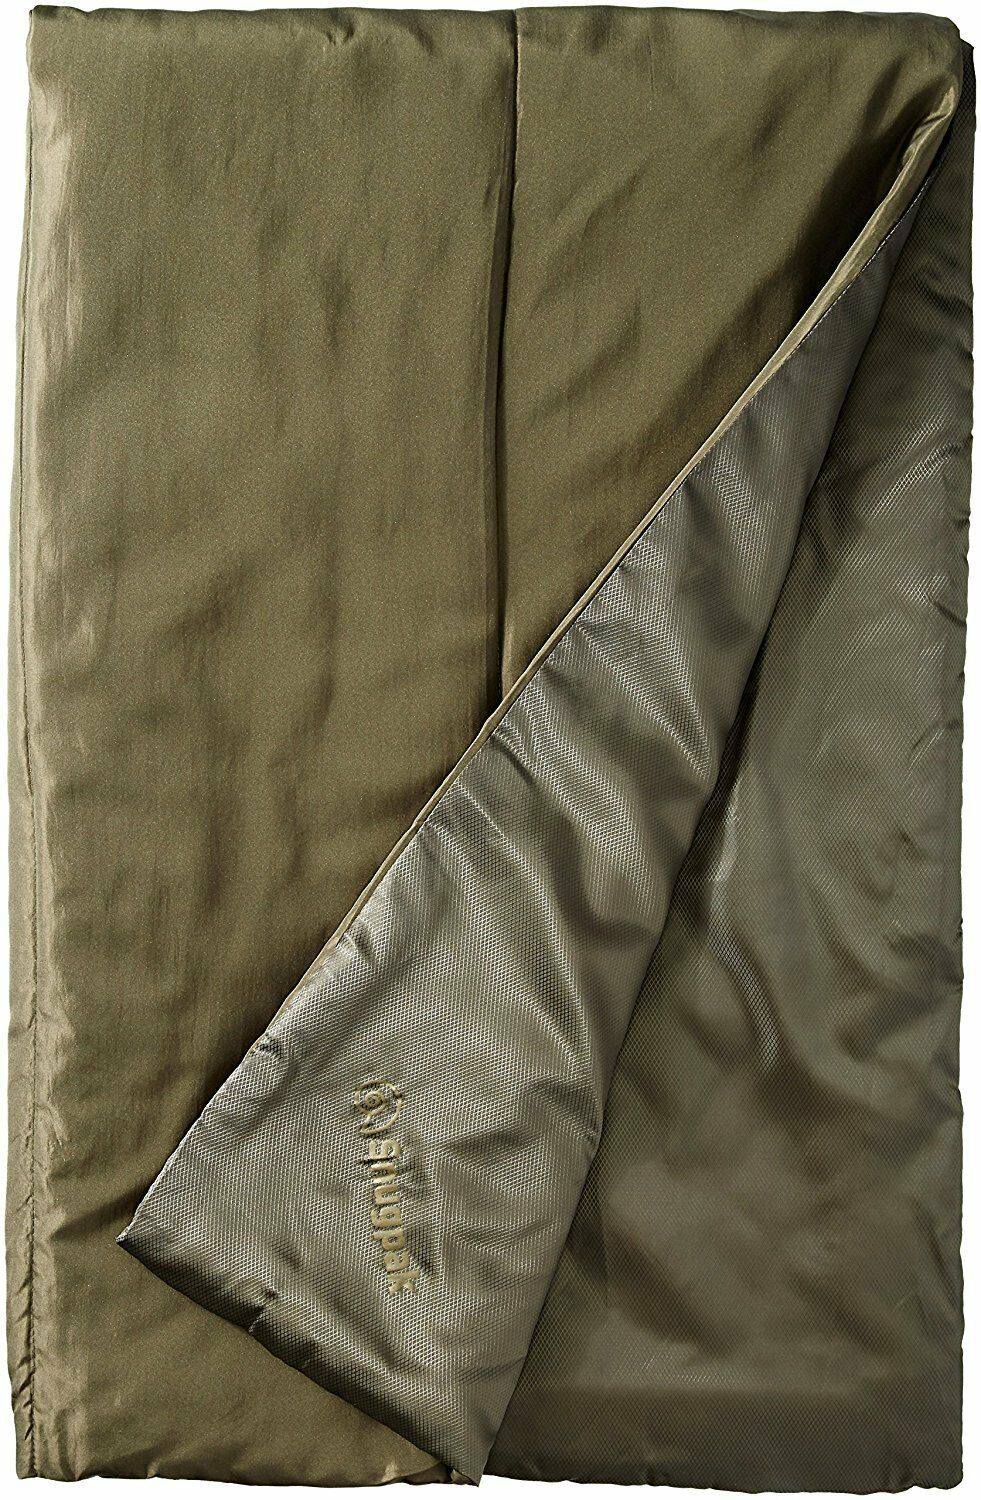 Snugpak Jungle Blanket, Olive Insulated travel Bushcraft